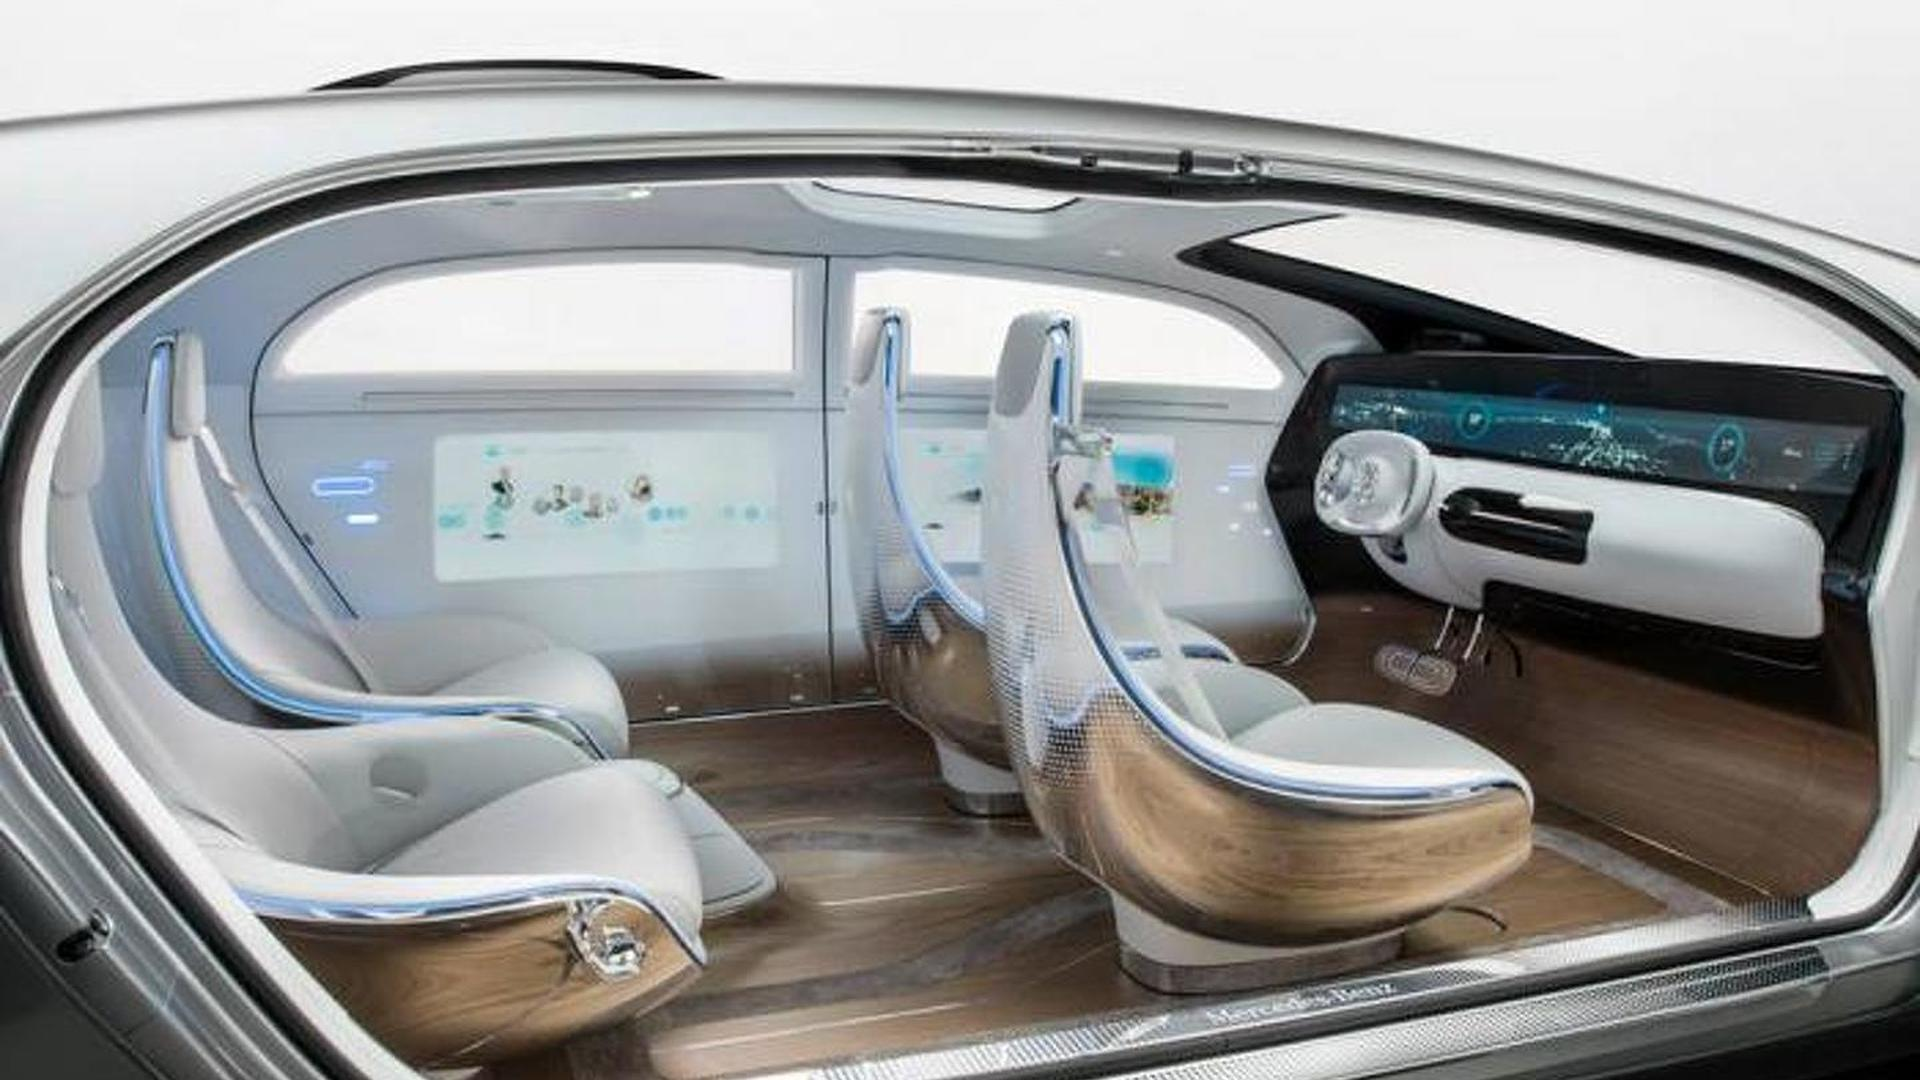 Mercedes F 015 >> Mercedes F 015 Luxury In Motion Concept Unveiled At Ces